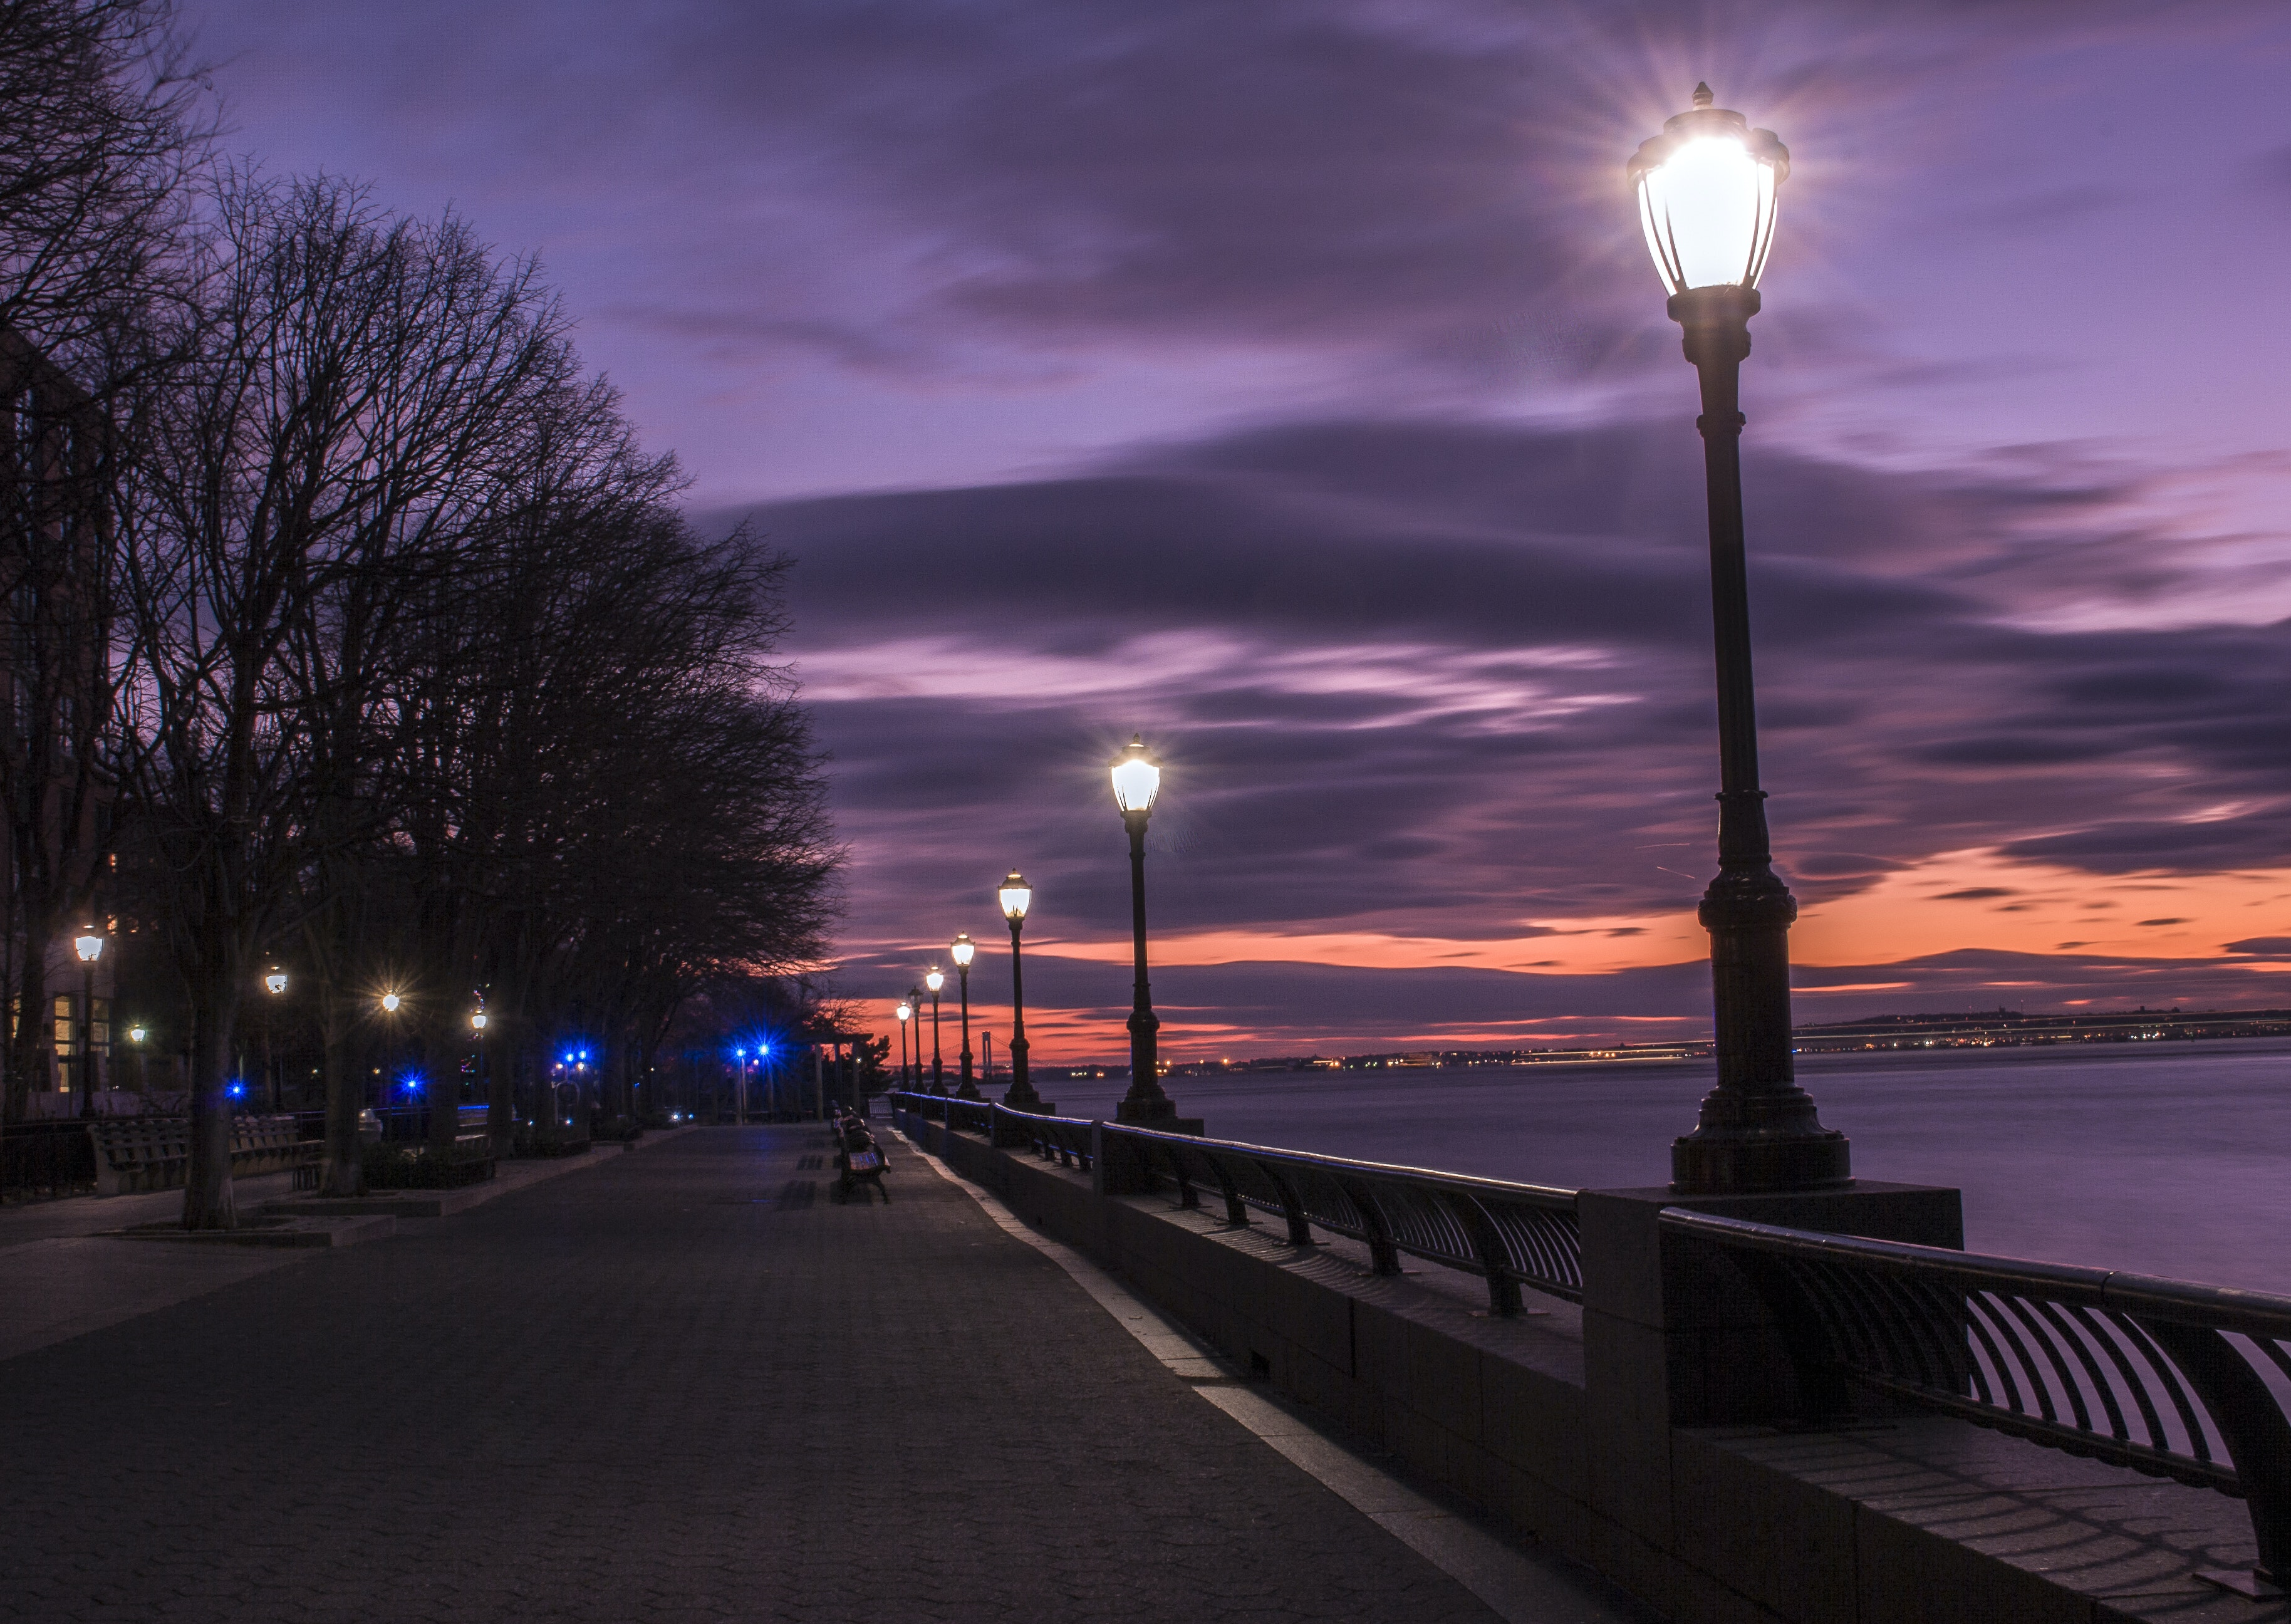 Simple Wallpaper Night City Street - pexels-photo-771883  Pictures.jpg\u0026fm\u003djpg